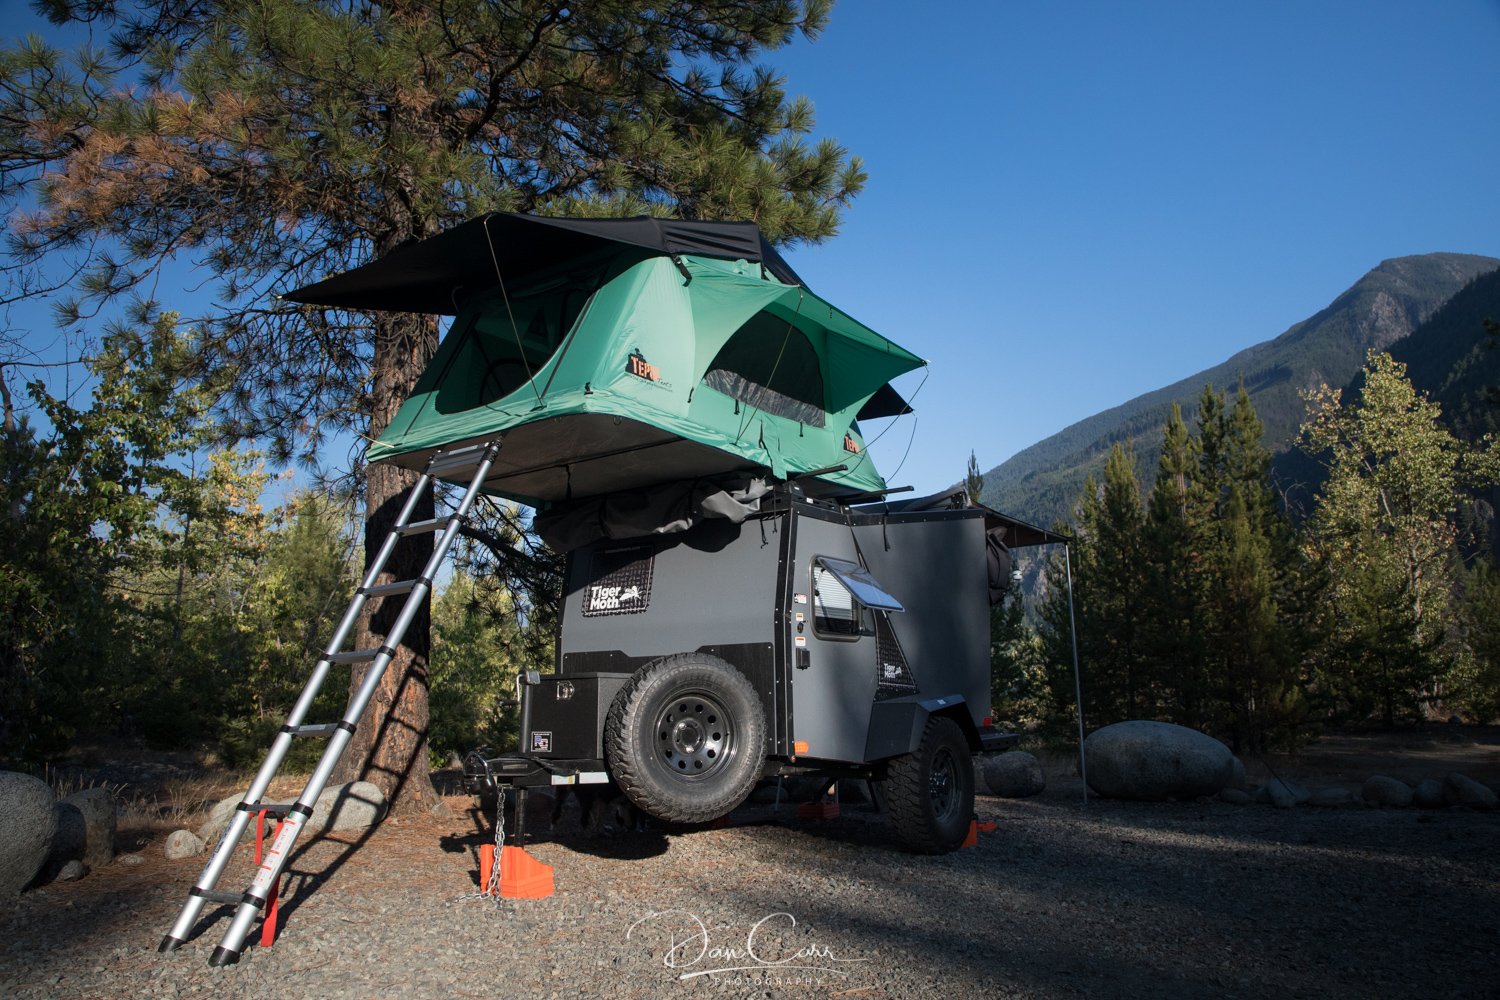 Taxa Tigermoth trailer with Tepui rooftop tent